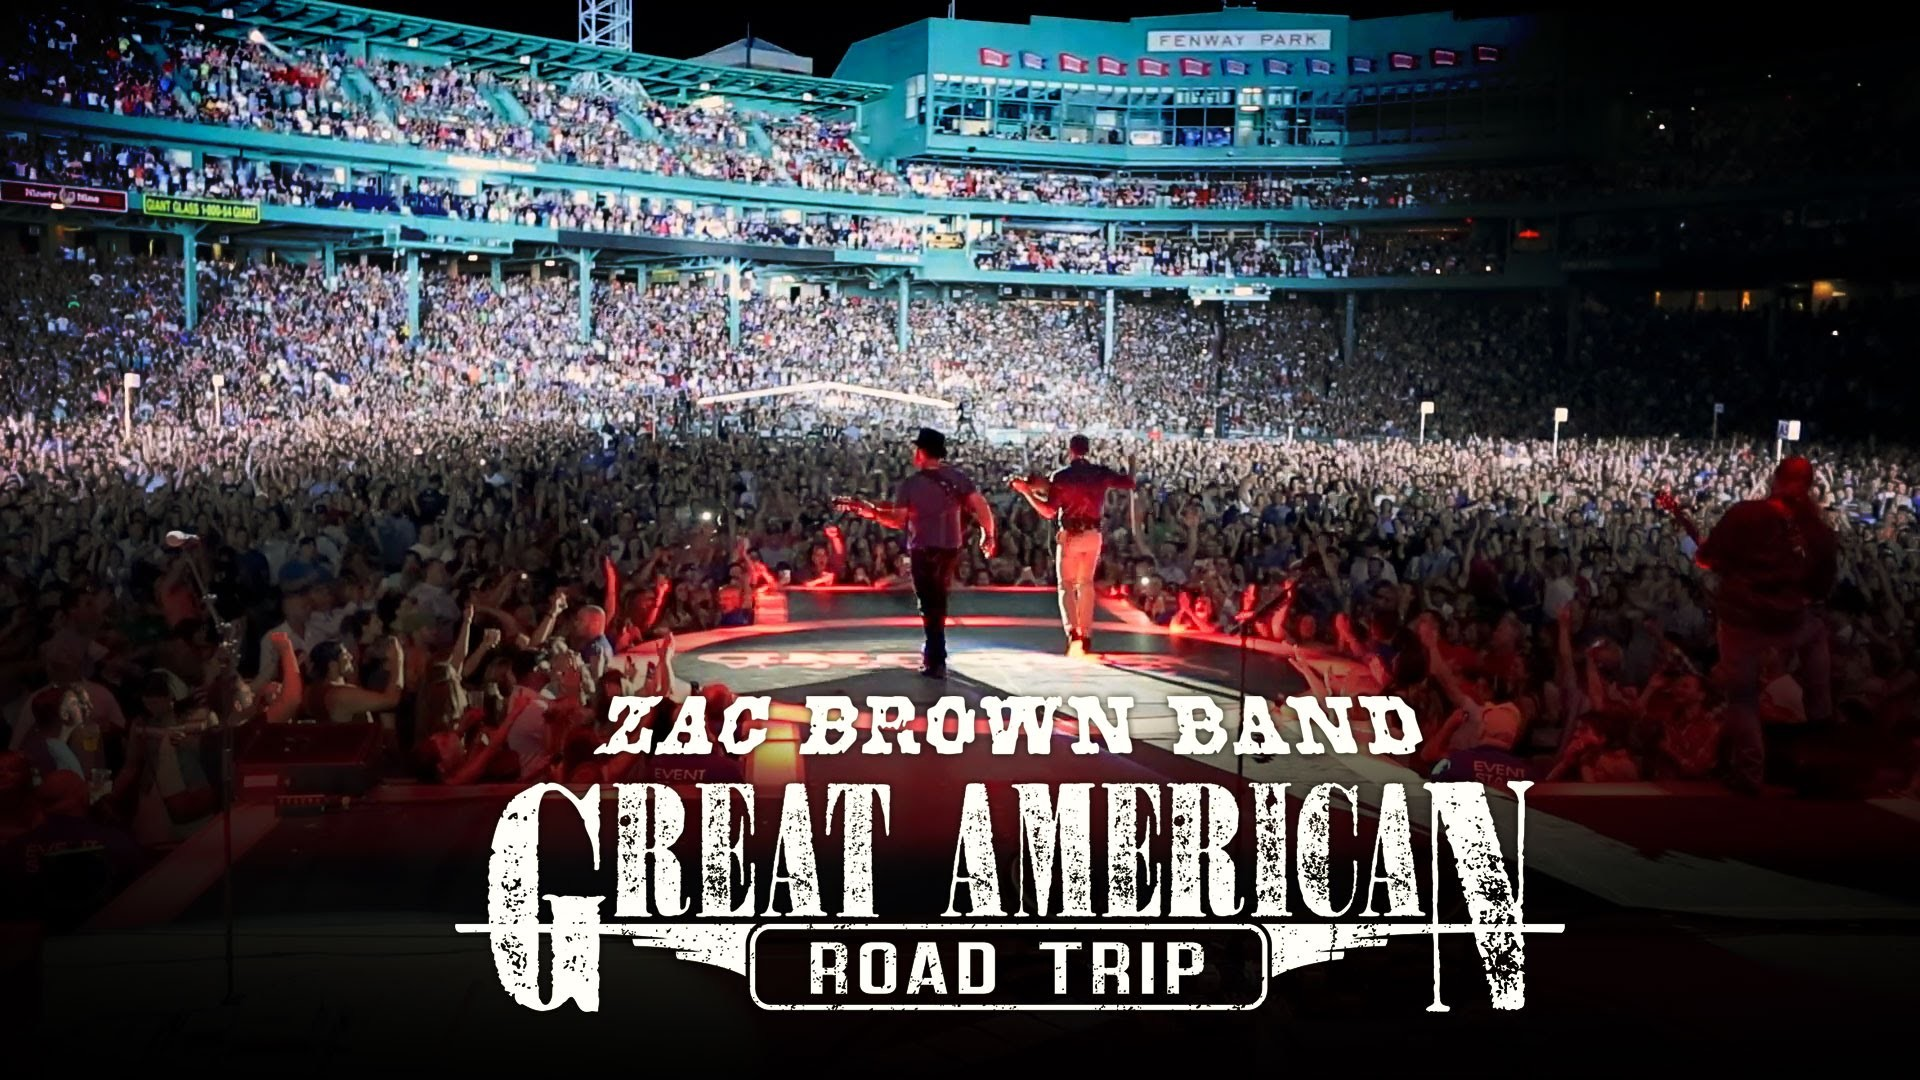 1920x1080 Zac Brown Band - Great American Road Trip - Boston & Hartford - YouTube